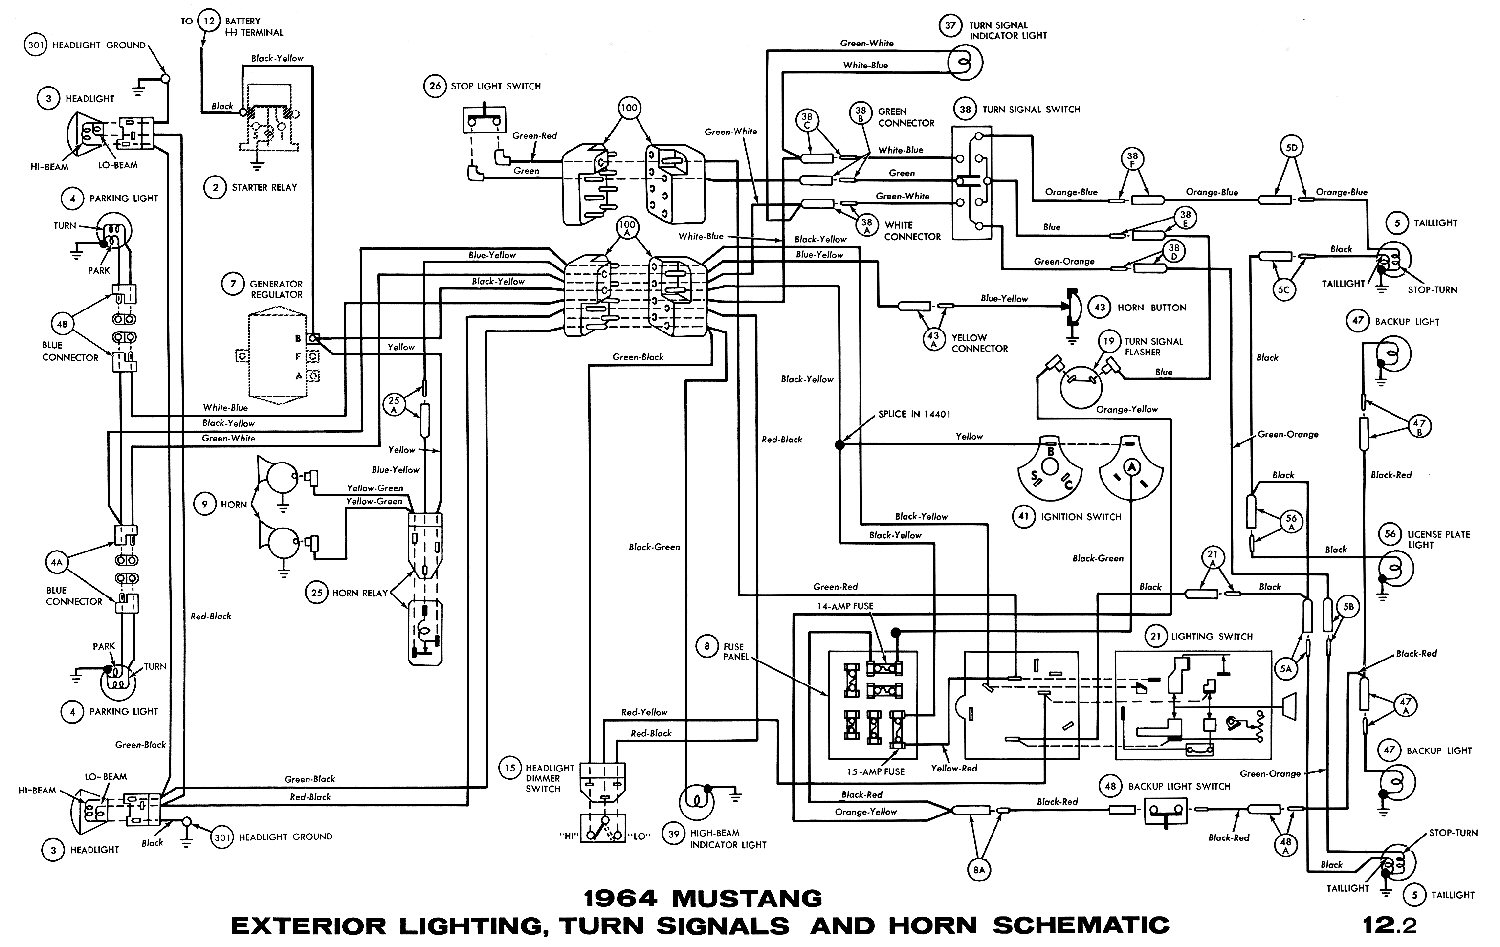 1965 mustang color wiring diagram wiring diagram todays1966 ford mustang color wiring diagram wiring diagram todays 1965 mustang firewall insulation 1965 mustang color wiring diagram